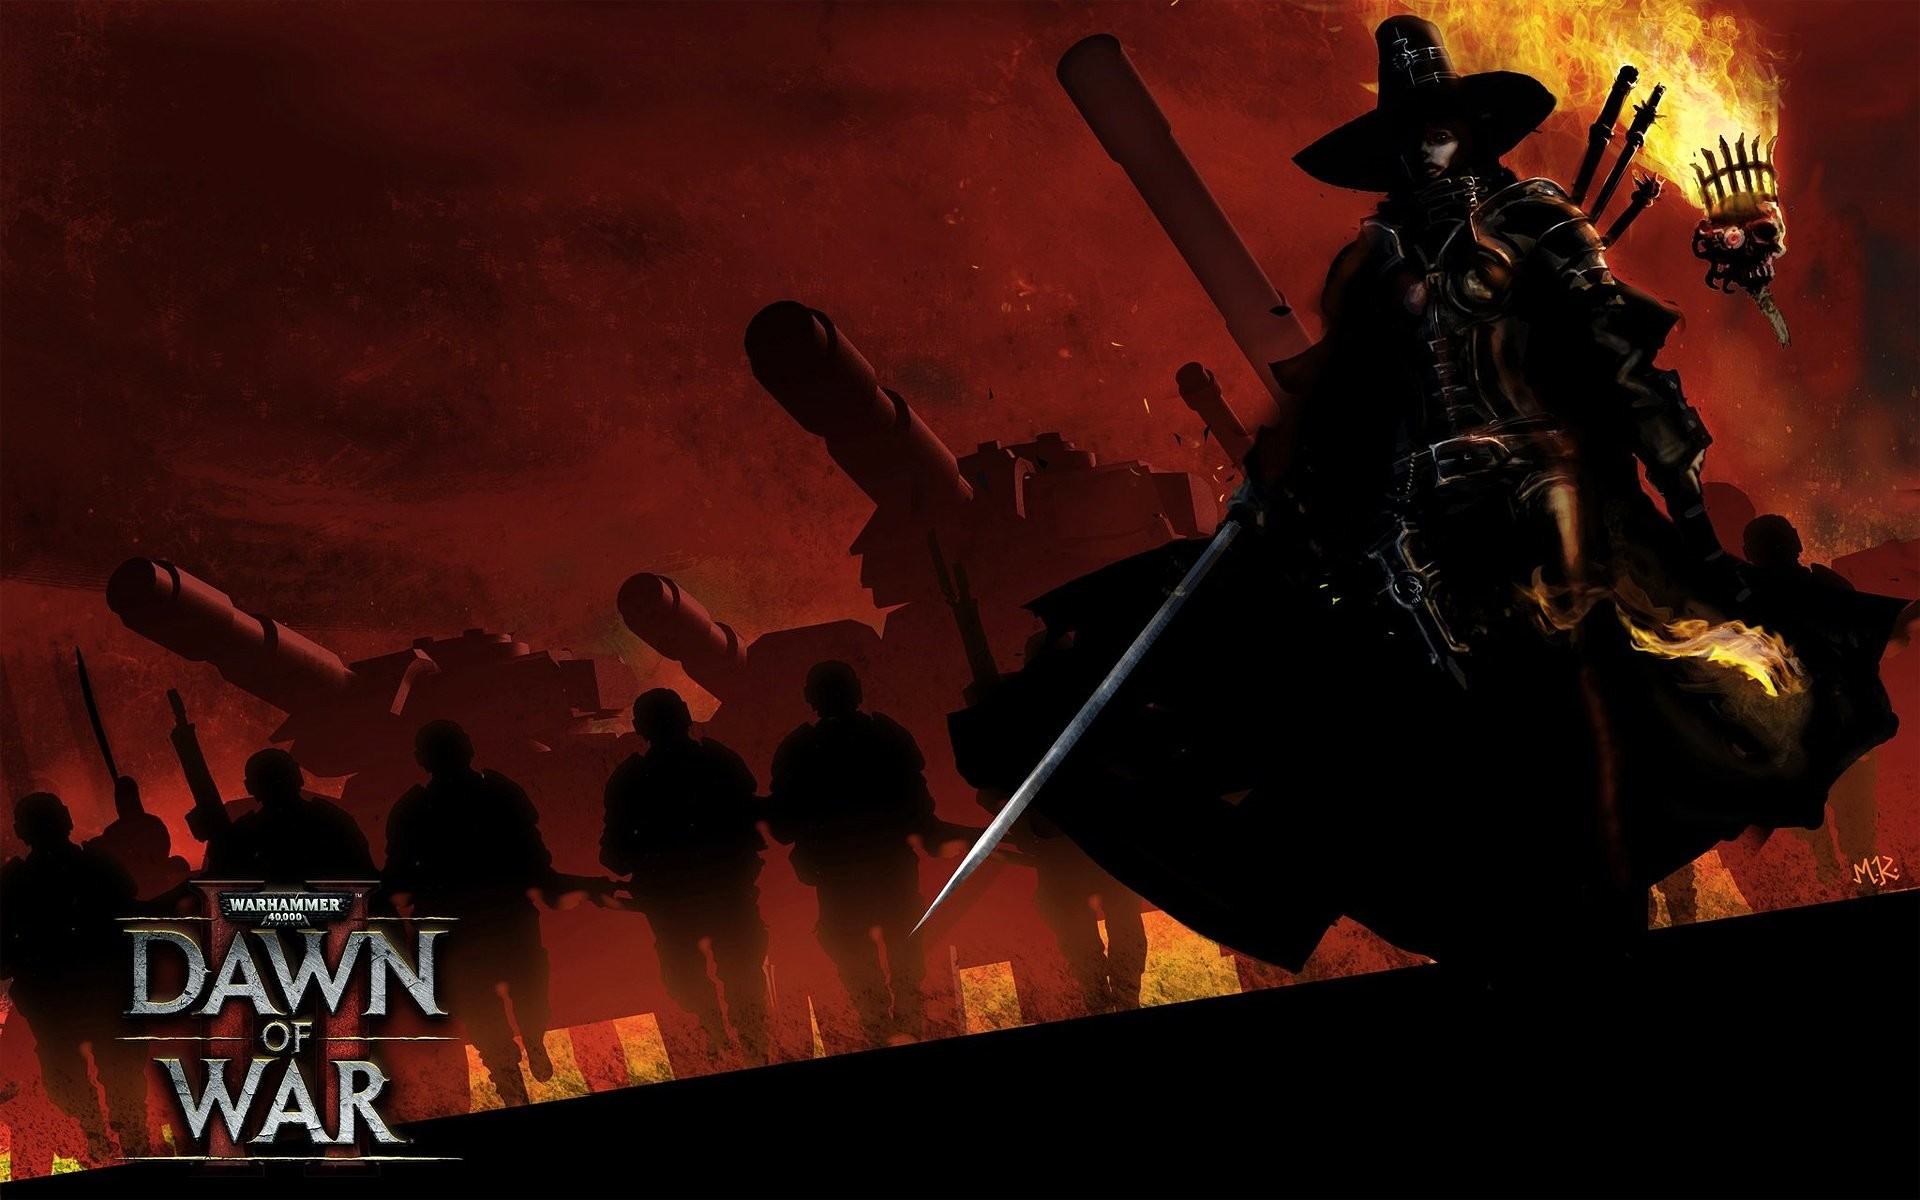 1920x1200 Wallpaper zu Warhammer 40.000: Dawn of War 2 - Retribution herunterladen